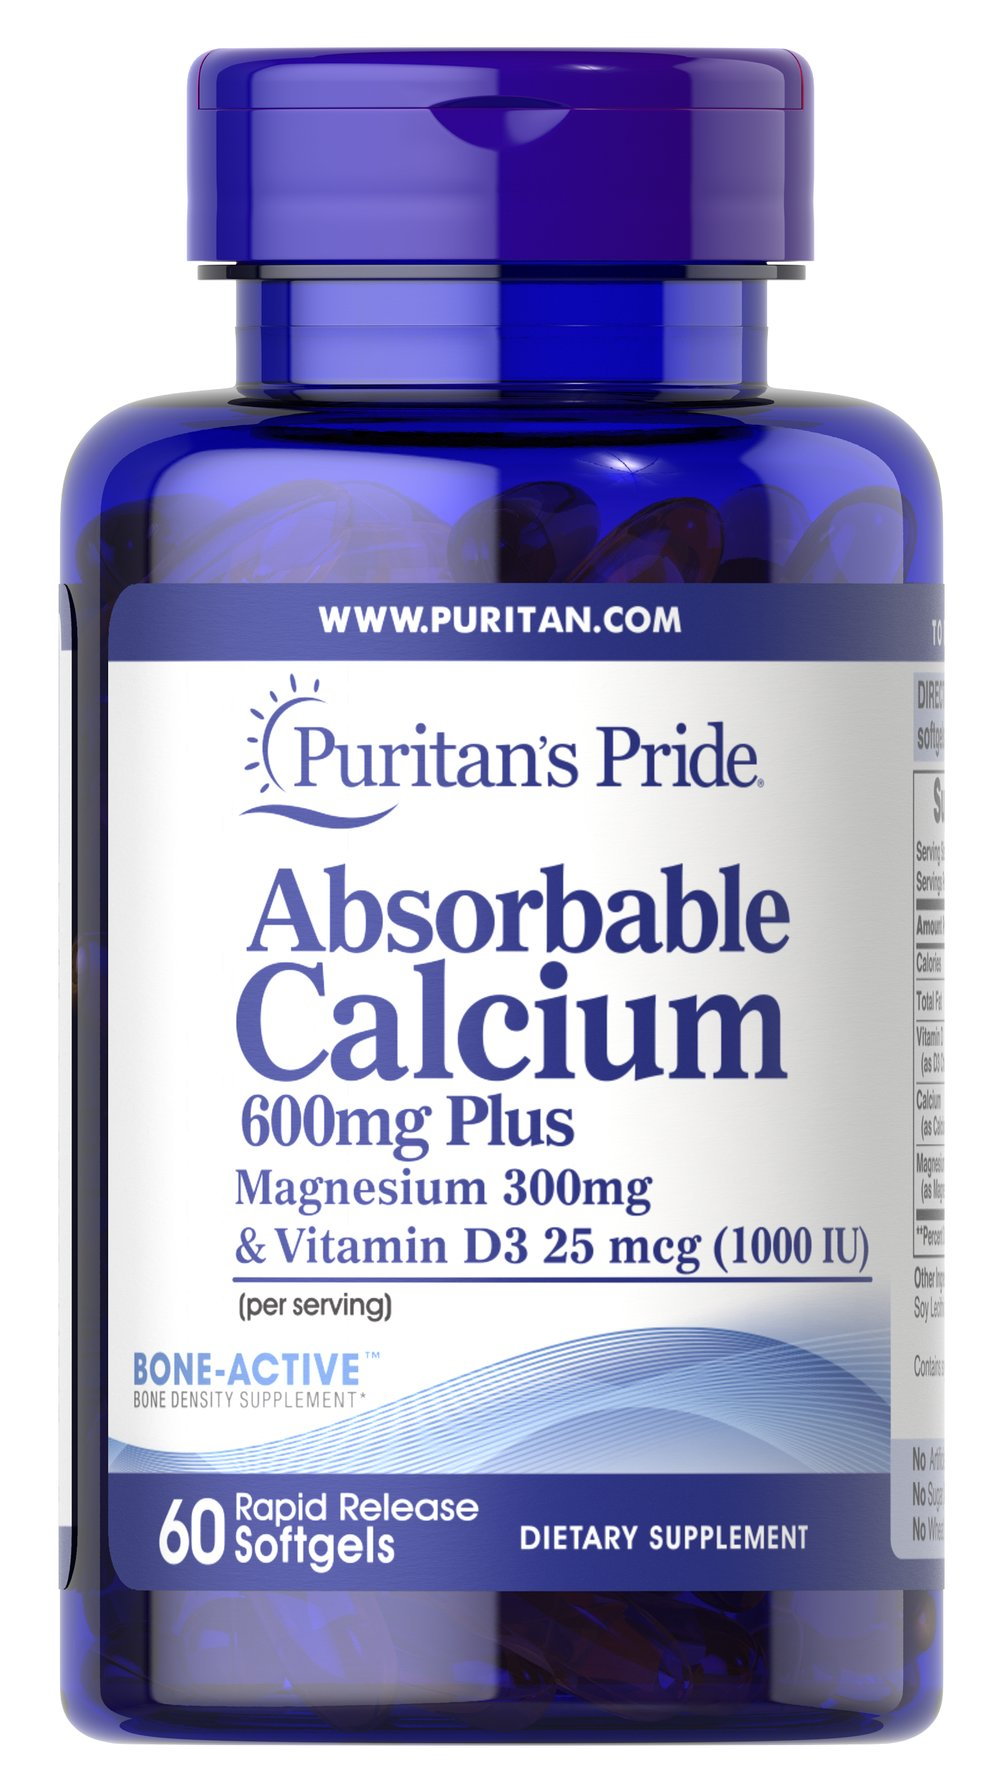 Absorbable Calcium 600mg plus Magnesium 300mg & Vitamin D 1000iu Thumbnail Alternate Bottle View